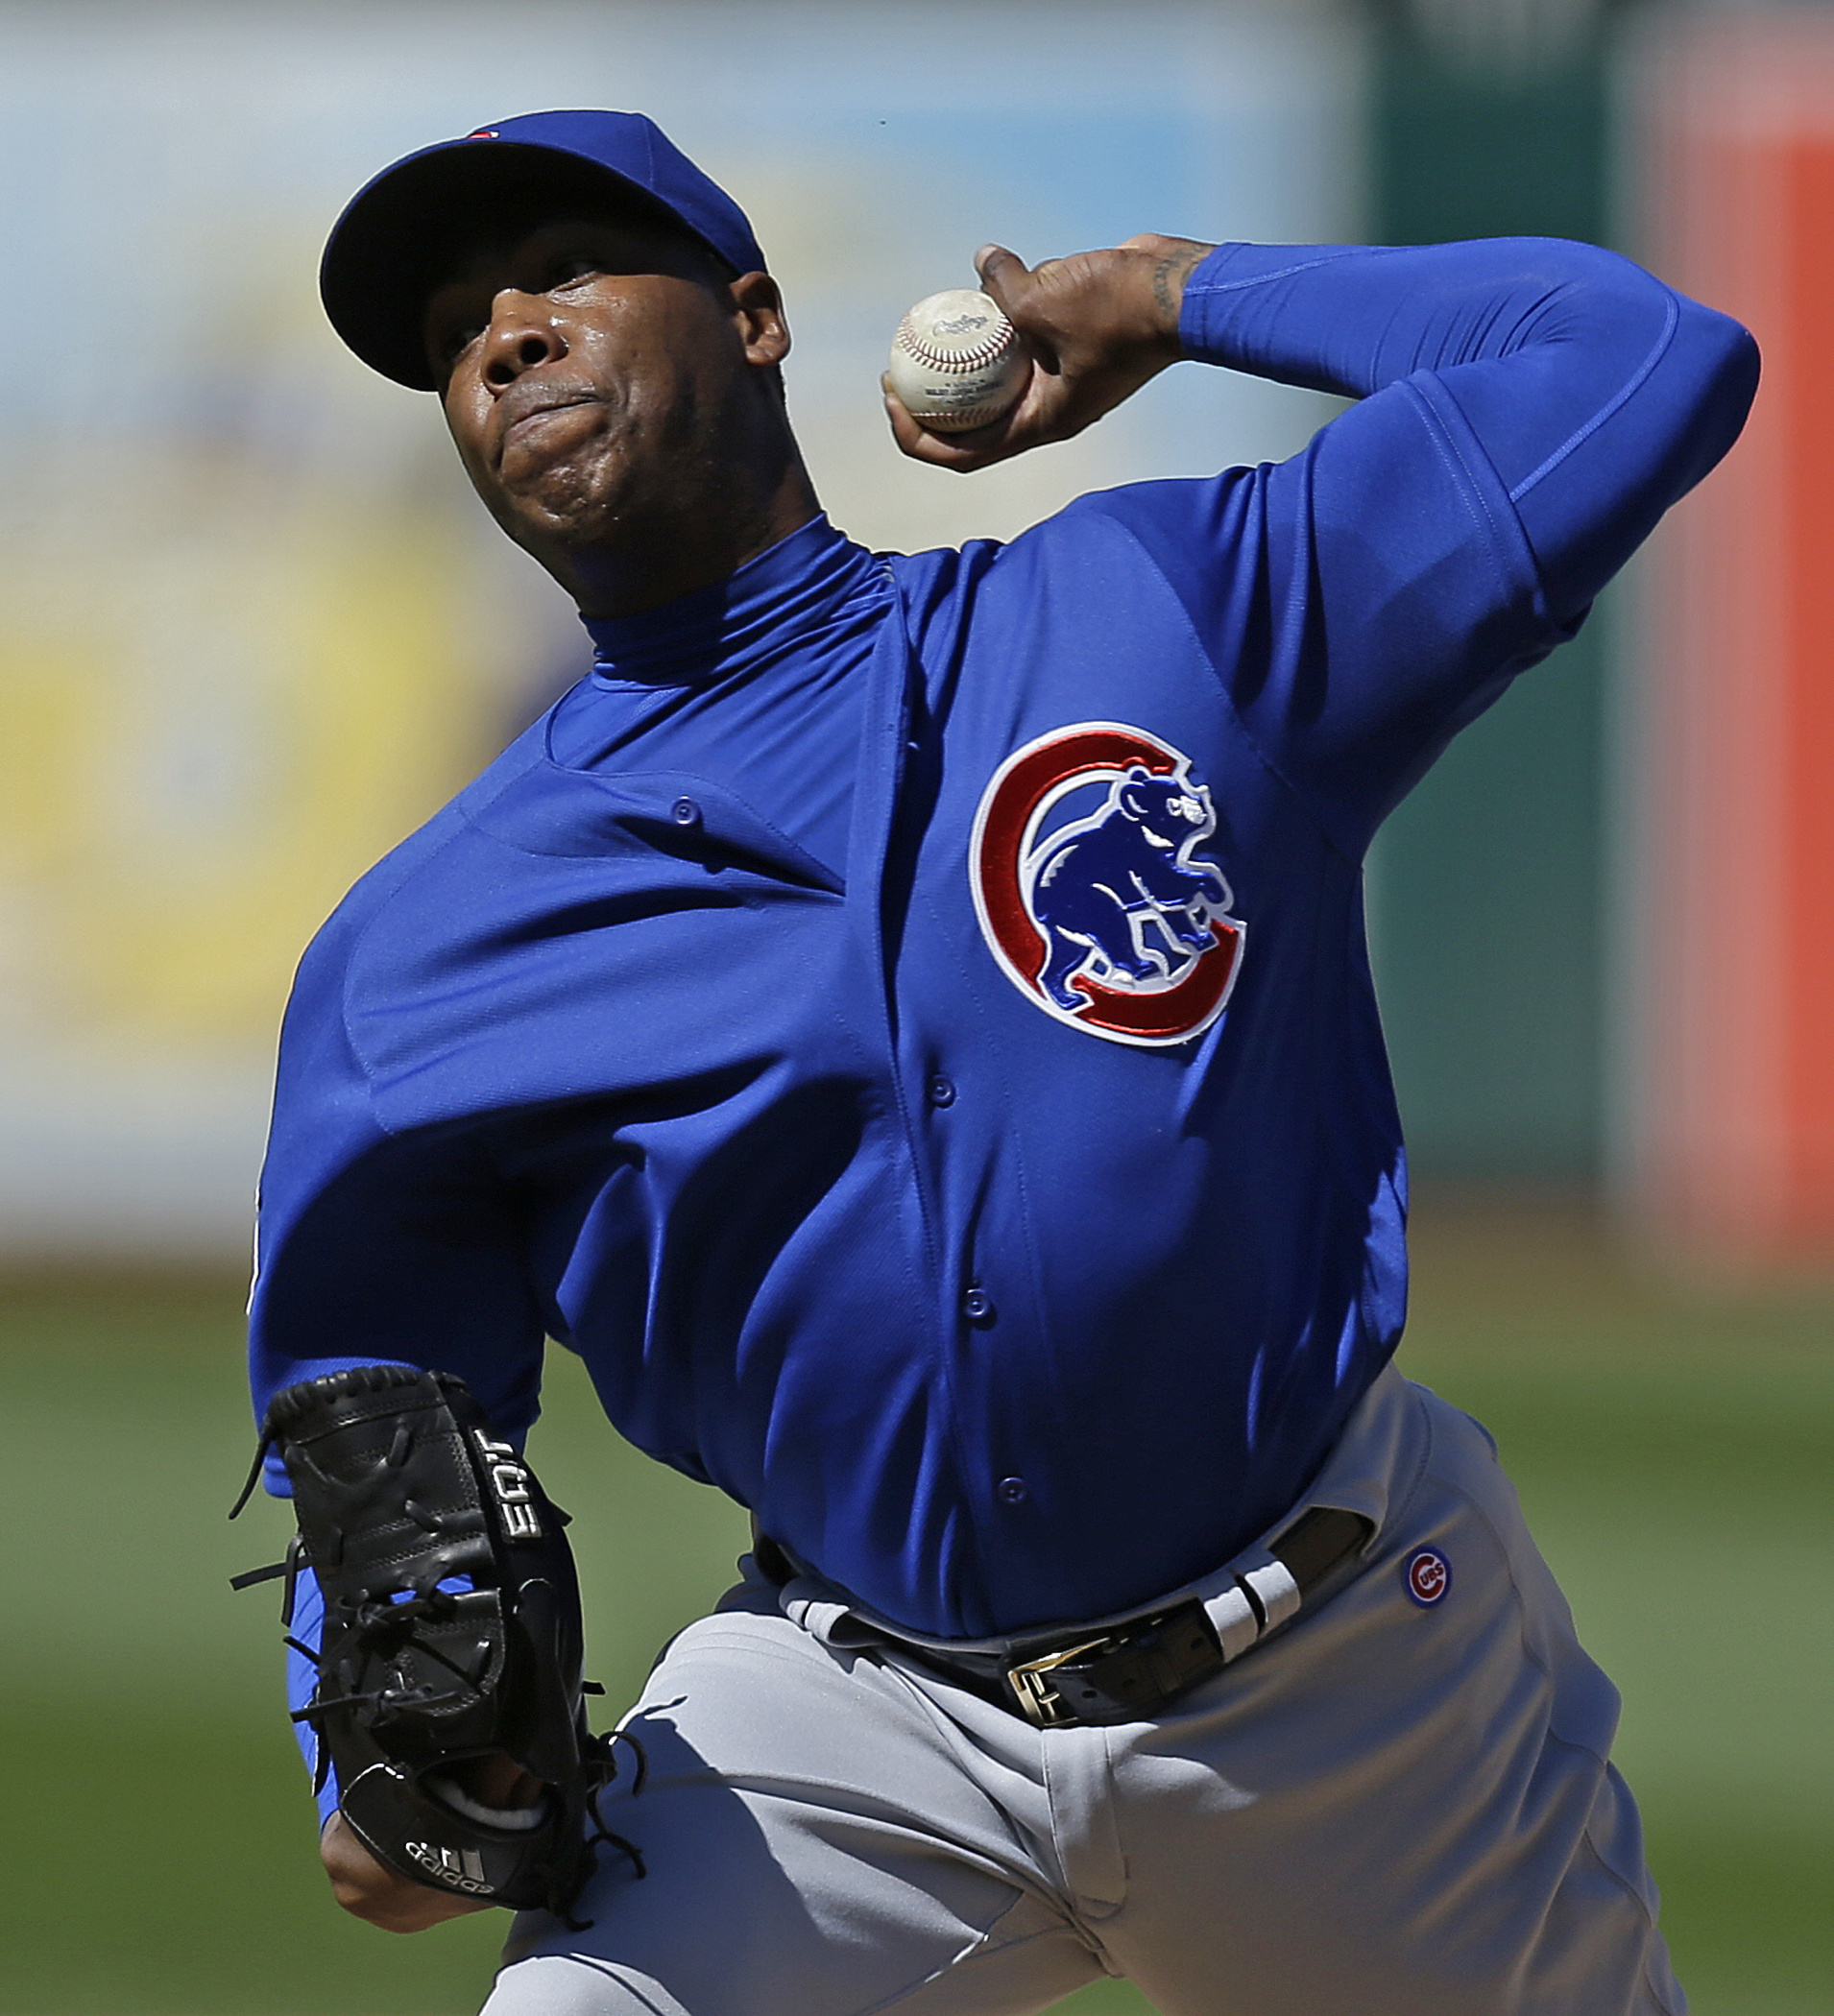 Chicago Cubs pitcher Aroldis Chapman works against the Oakland Athletics in the ninth inning of a baseball game, Sunday, Aug. 7, 2016, in Oakland, Calif. (AP Photo/Ben Margot)